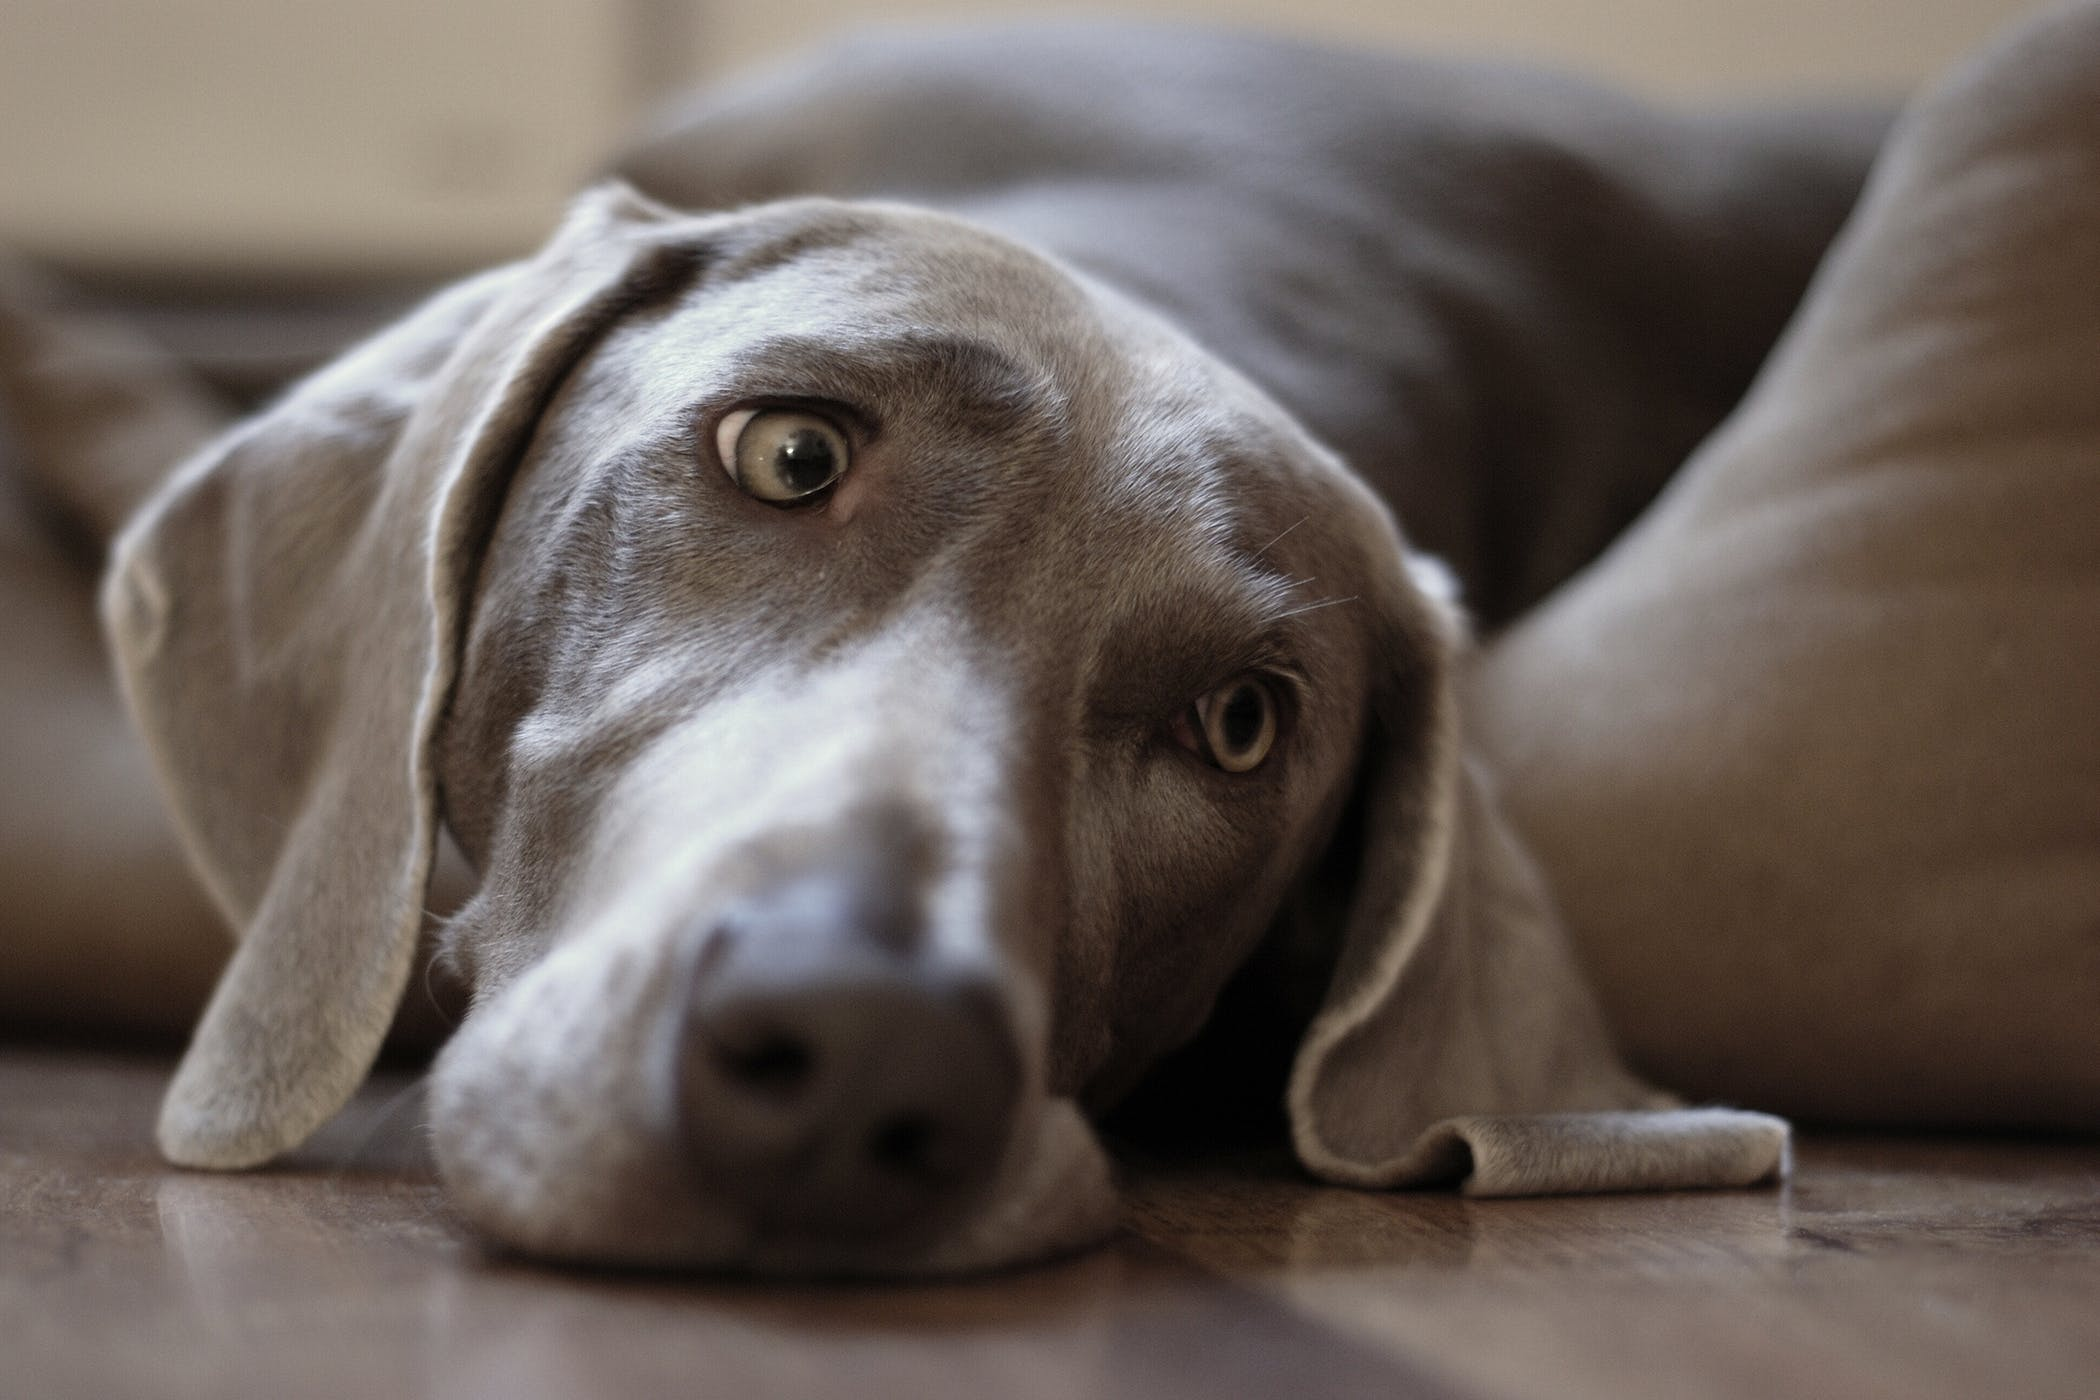 Home Treatment For Seizures In Dogs